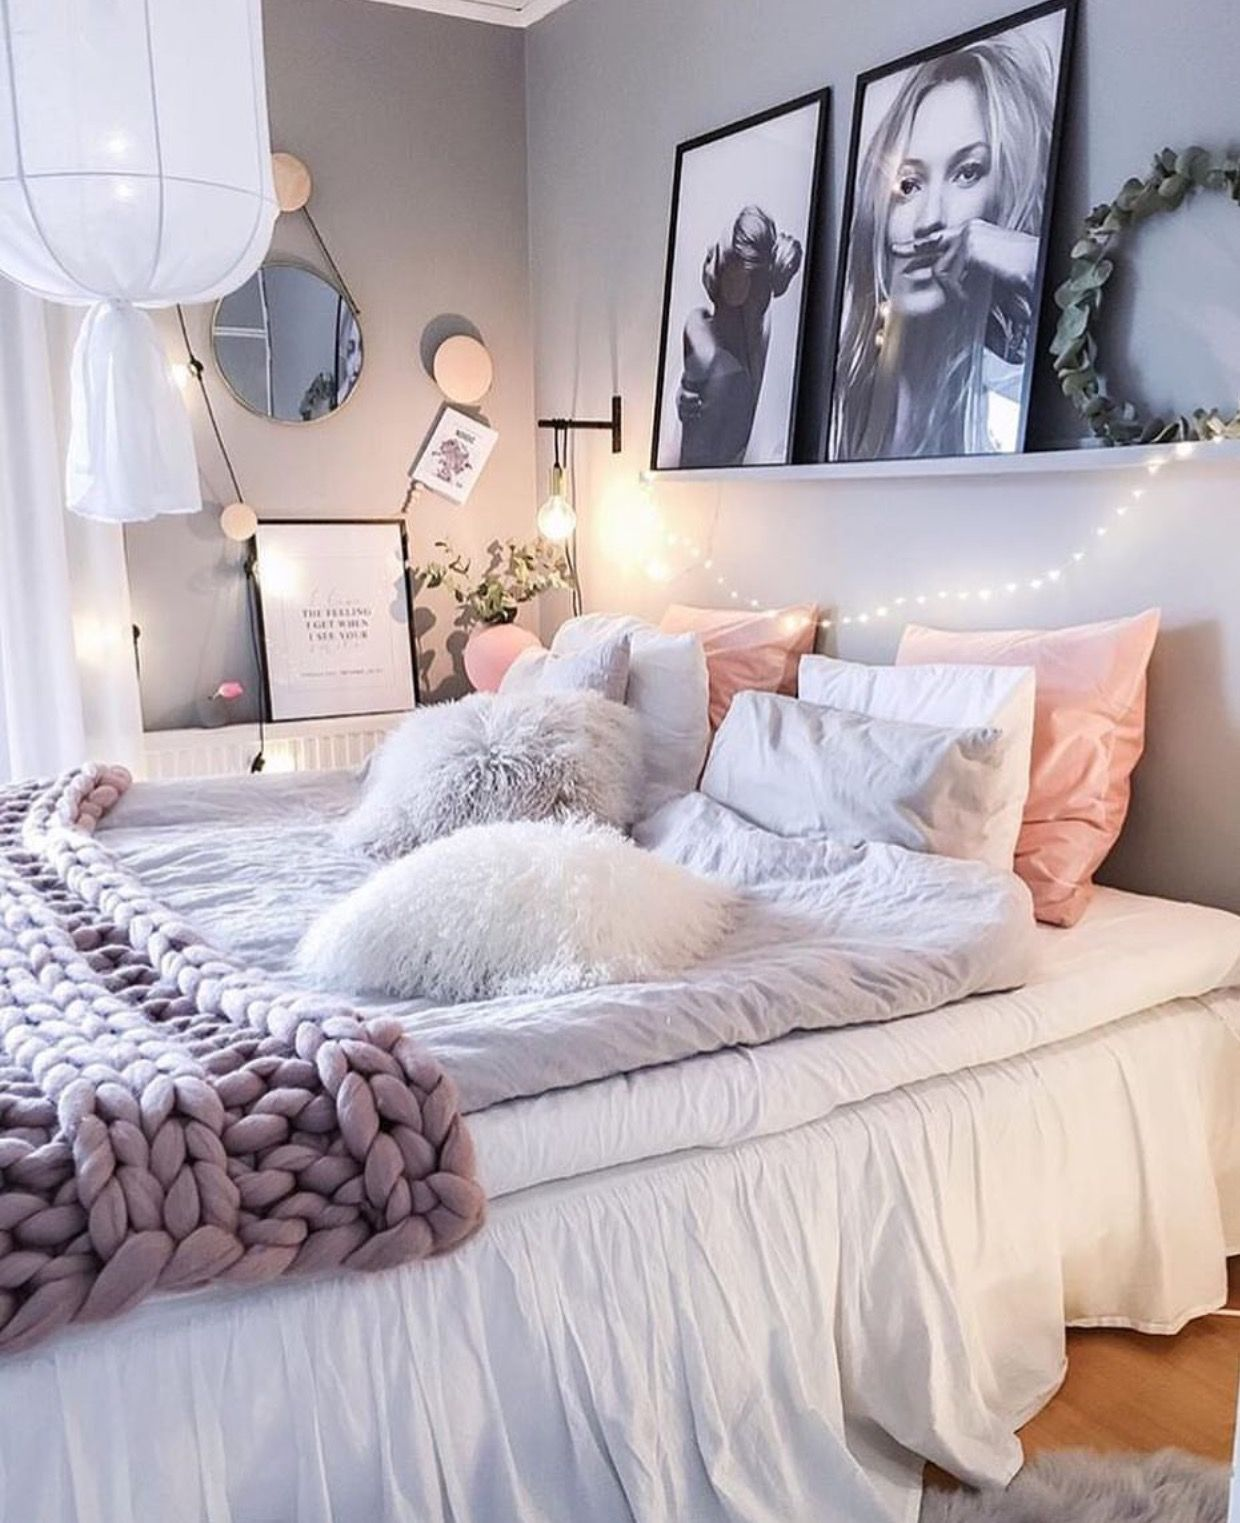 Girly Diy Bedroom: Bedroom Ideas In 2019